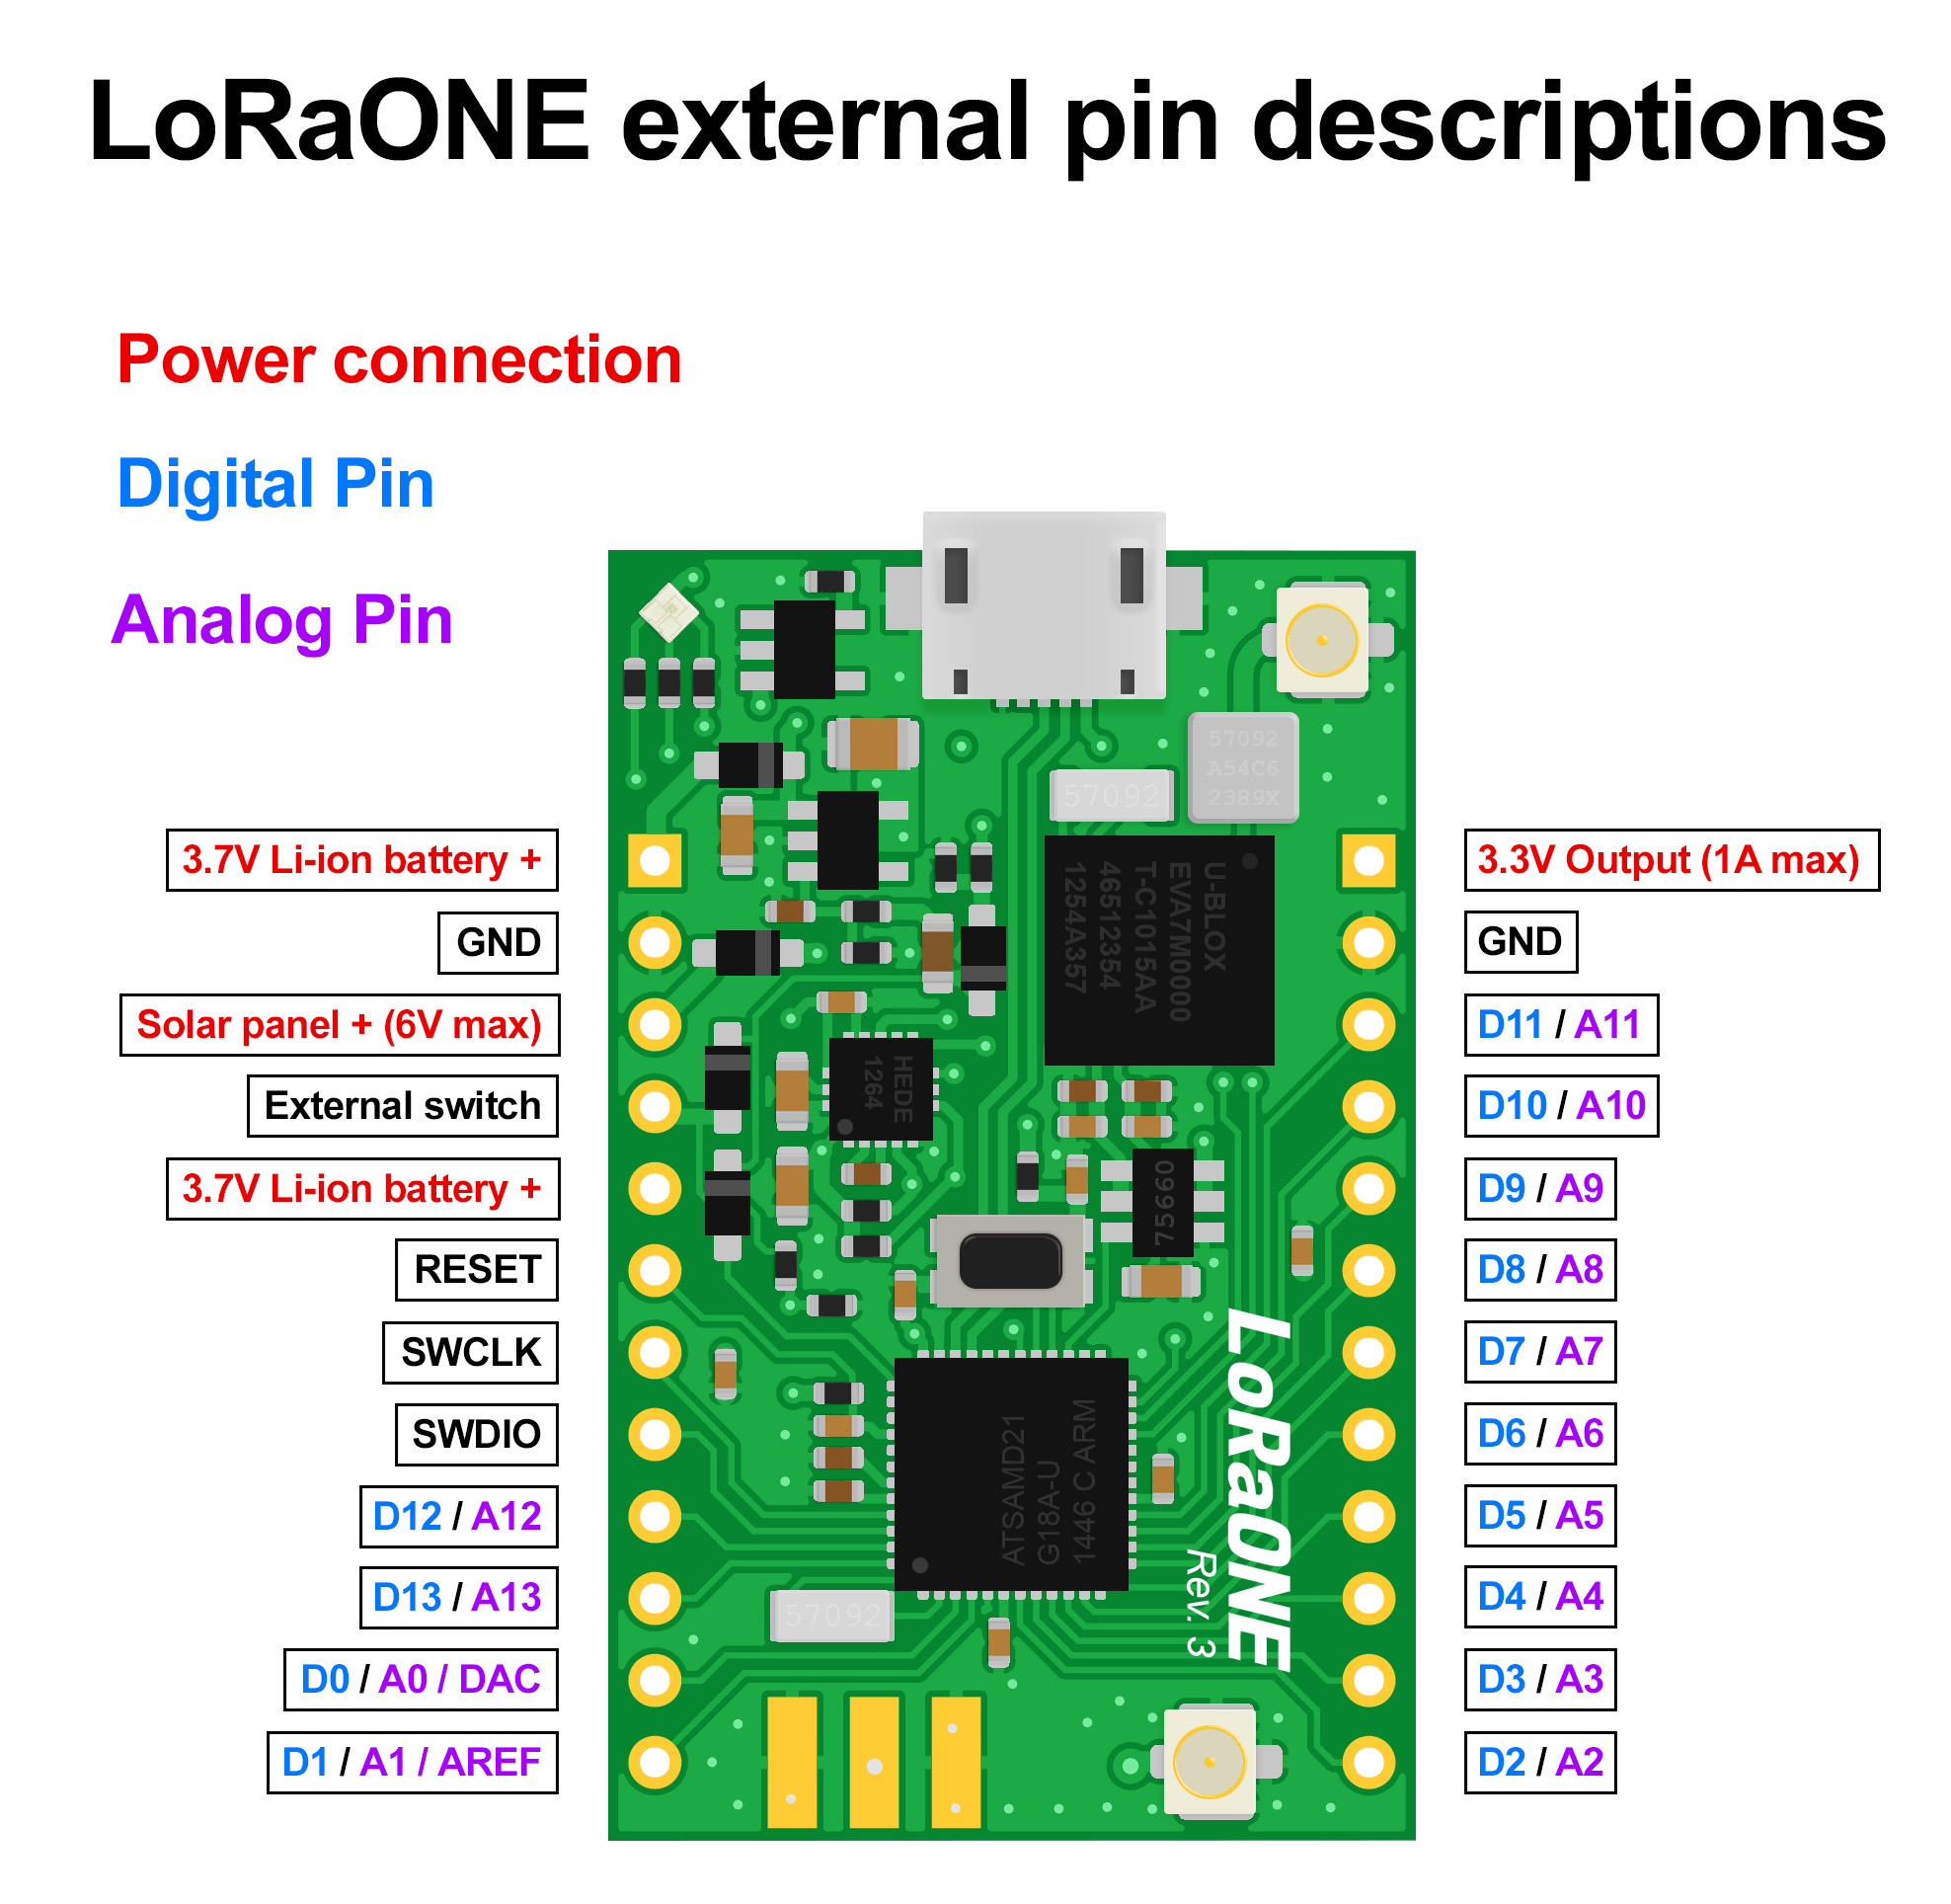 LoRaONE external connections